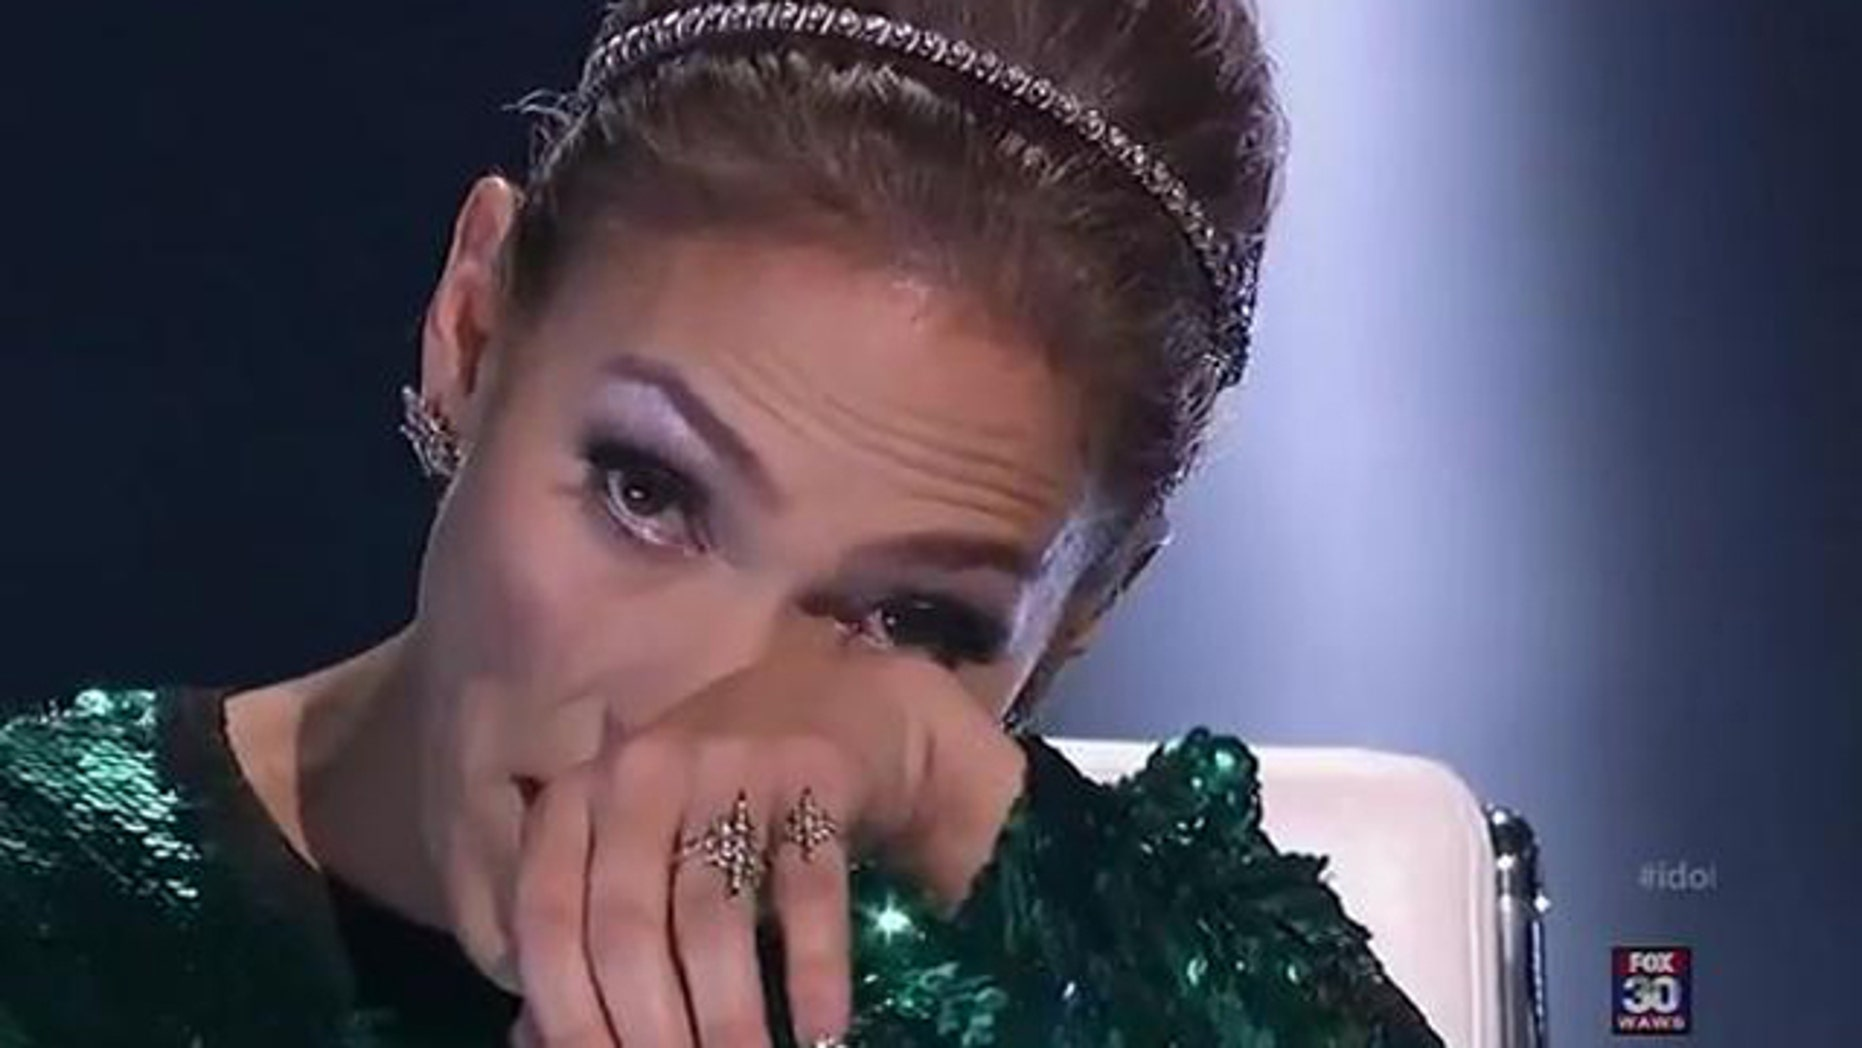 Feb. 23, 2012: Jennifer Lopez wipes tears as she tells American Idol contestant Jermaine Jones he did not make it to the top 24.